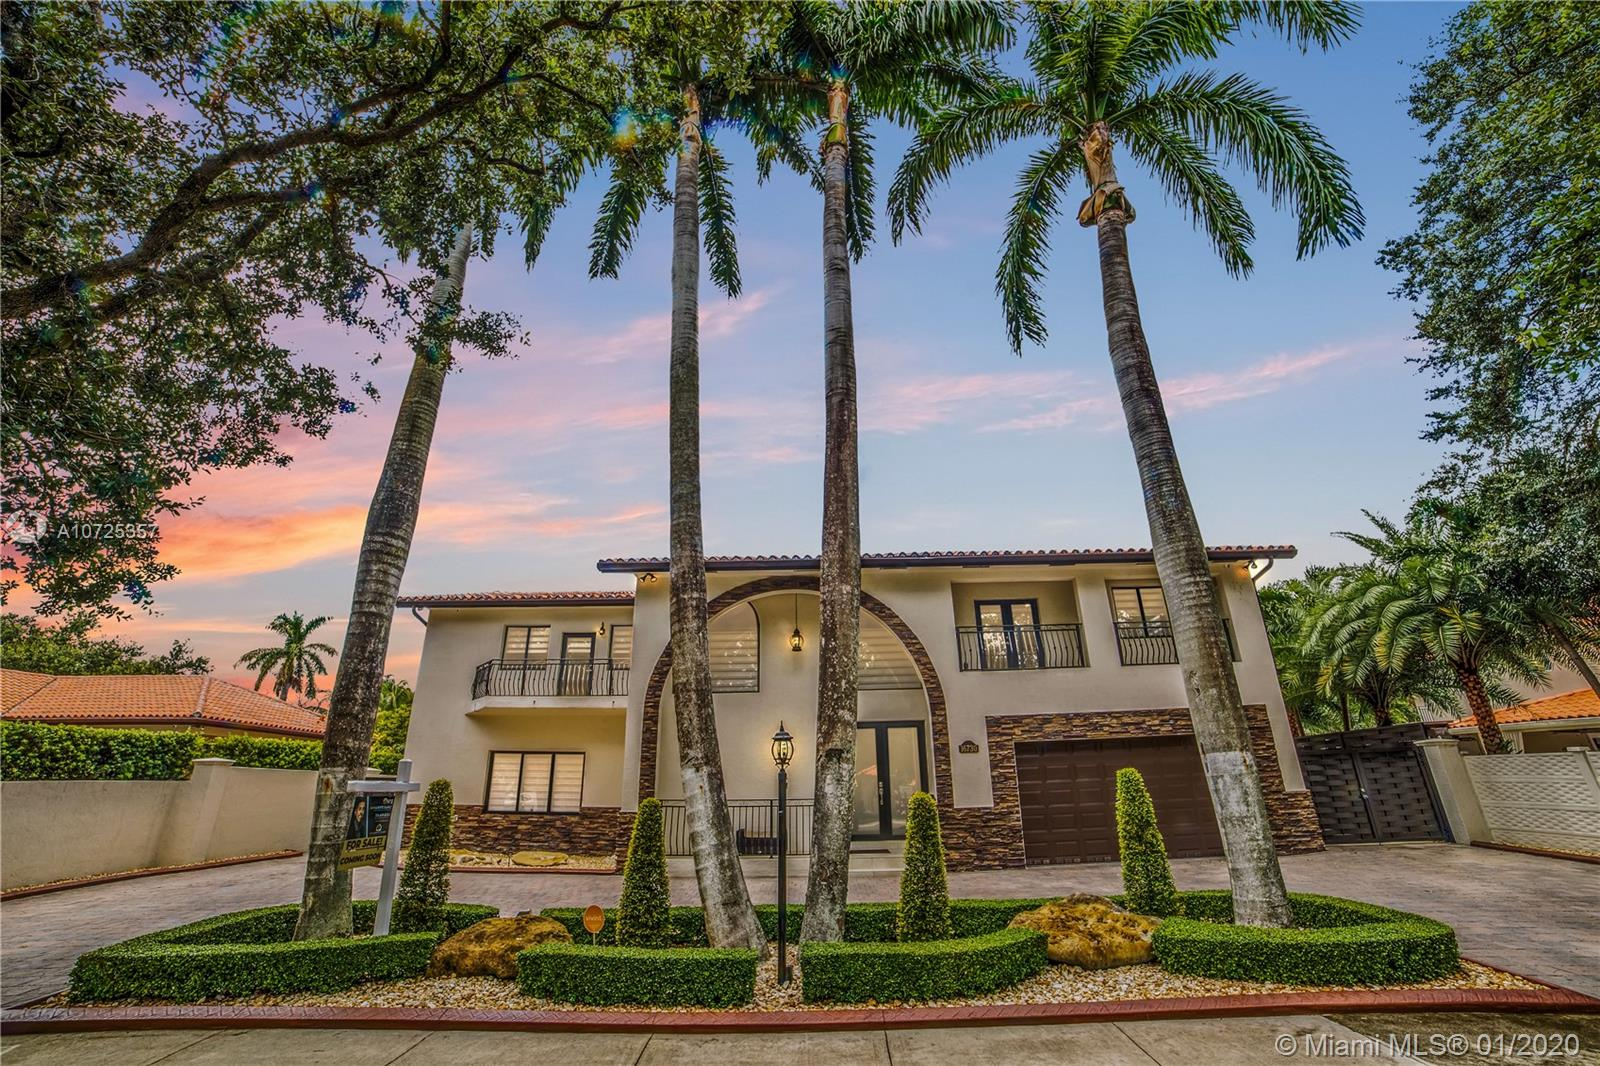 16730 NW 82nd Ave, Miami Lakes, FL 33016